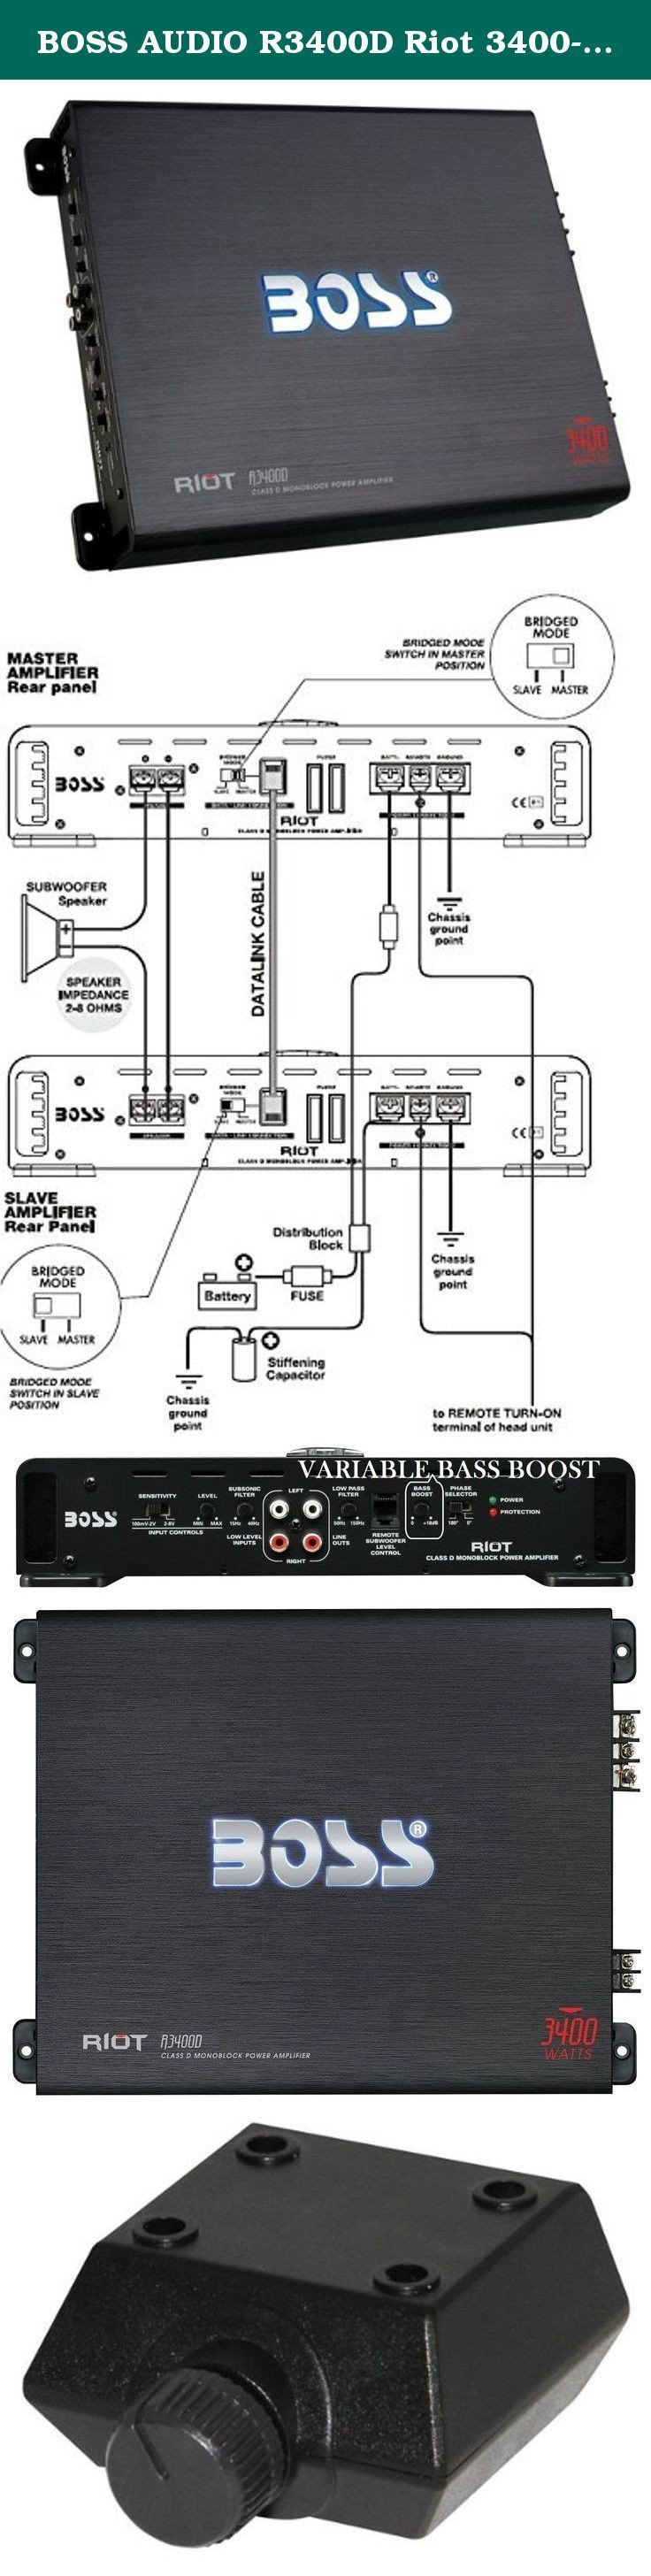 L322 Audio Wiring Diagram Auto Electrical Diagramtrailer 1997 Wells Trailer Batteries